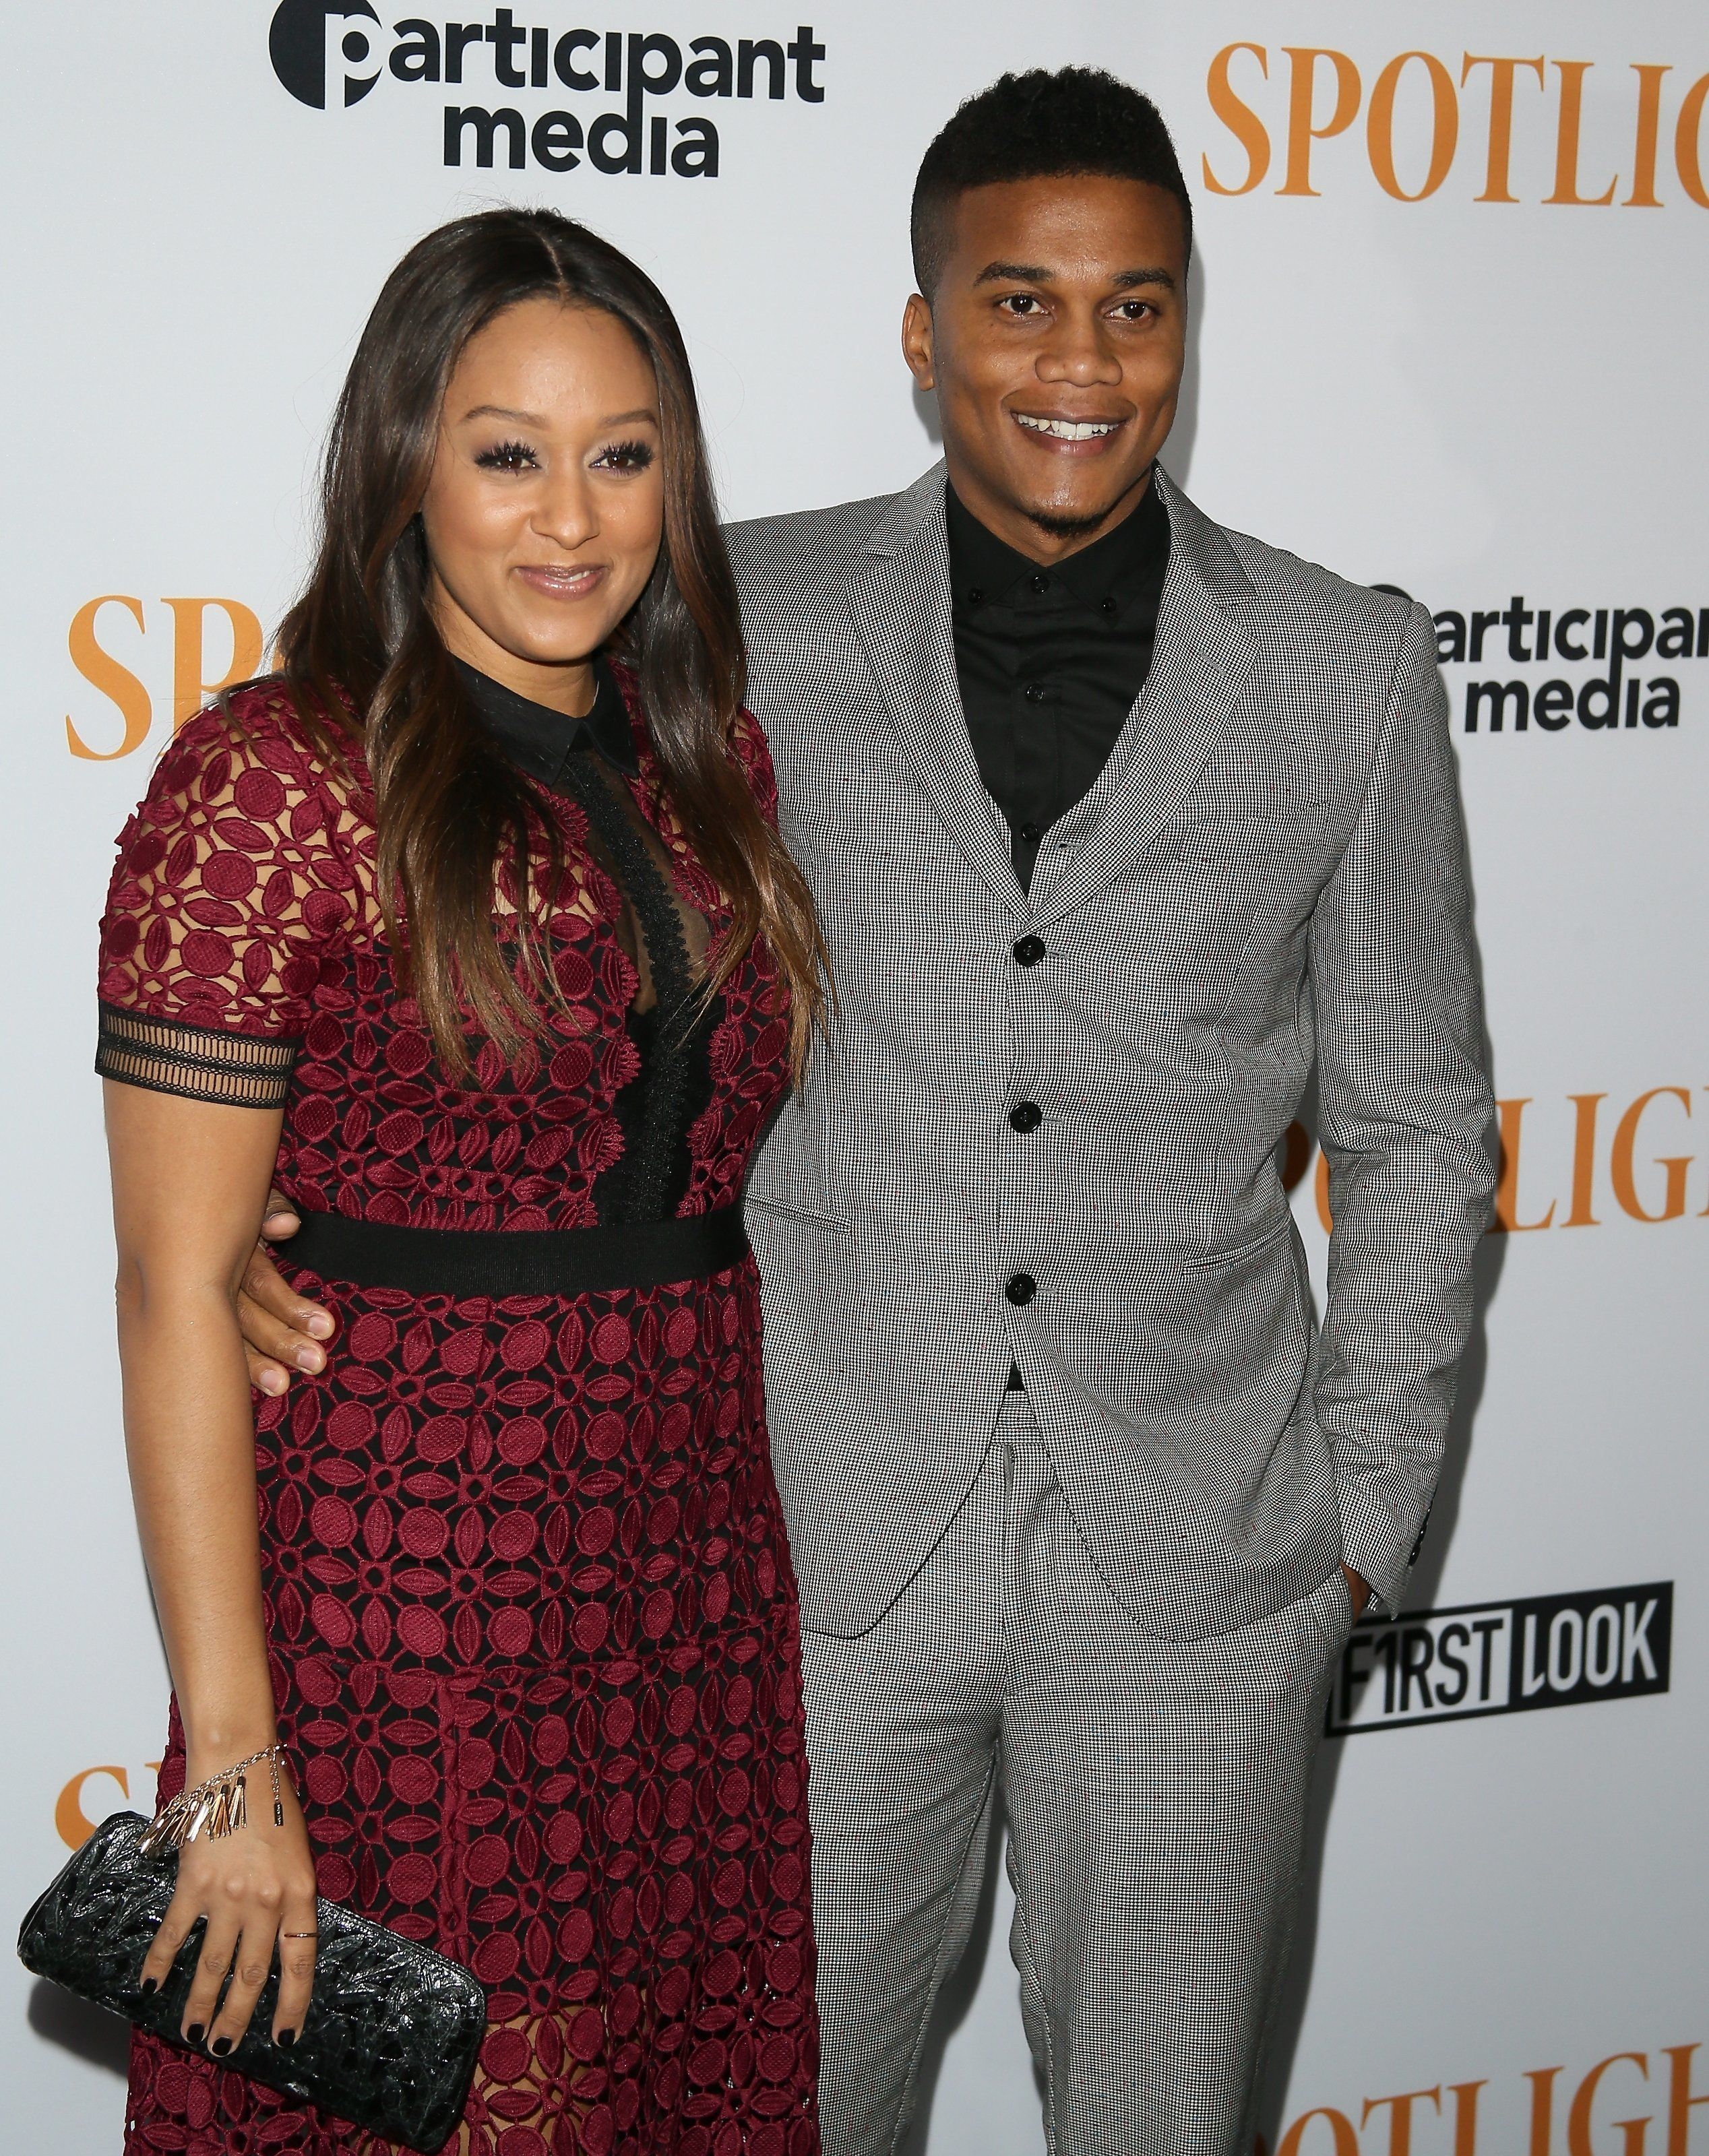 LOS ANGELES, CA - NOVEMBER 3: Tia Mowry and Cory Hardrict attend a special screening of Open Road Films' 'Spotlight' held at the DGA Theater on November 3, 2015 in Los Angeles, California.  (Photo by JB Lacroix/WireImage)